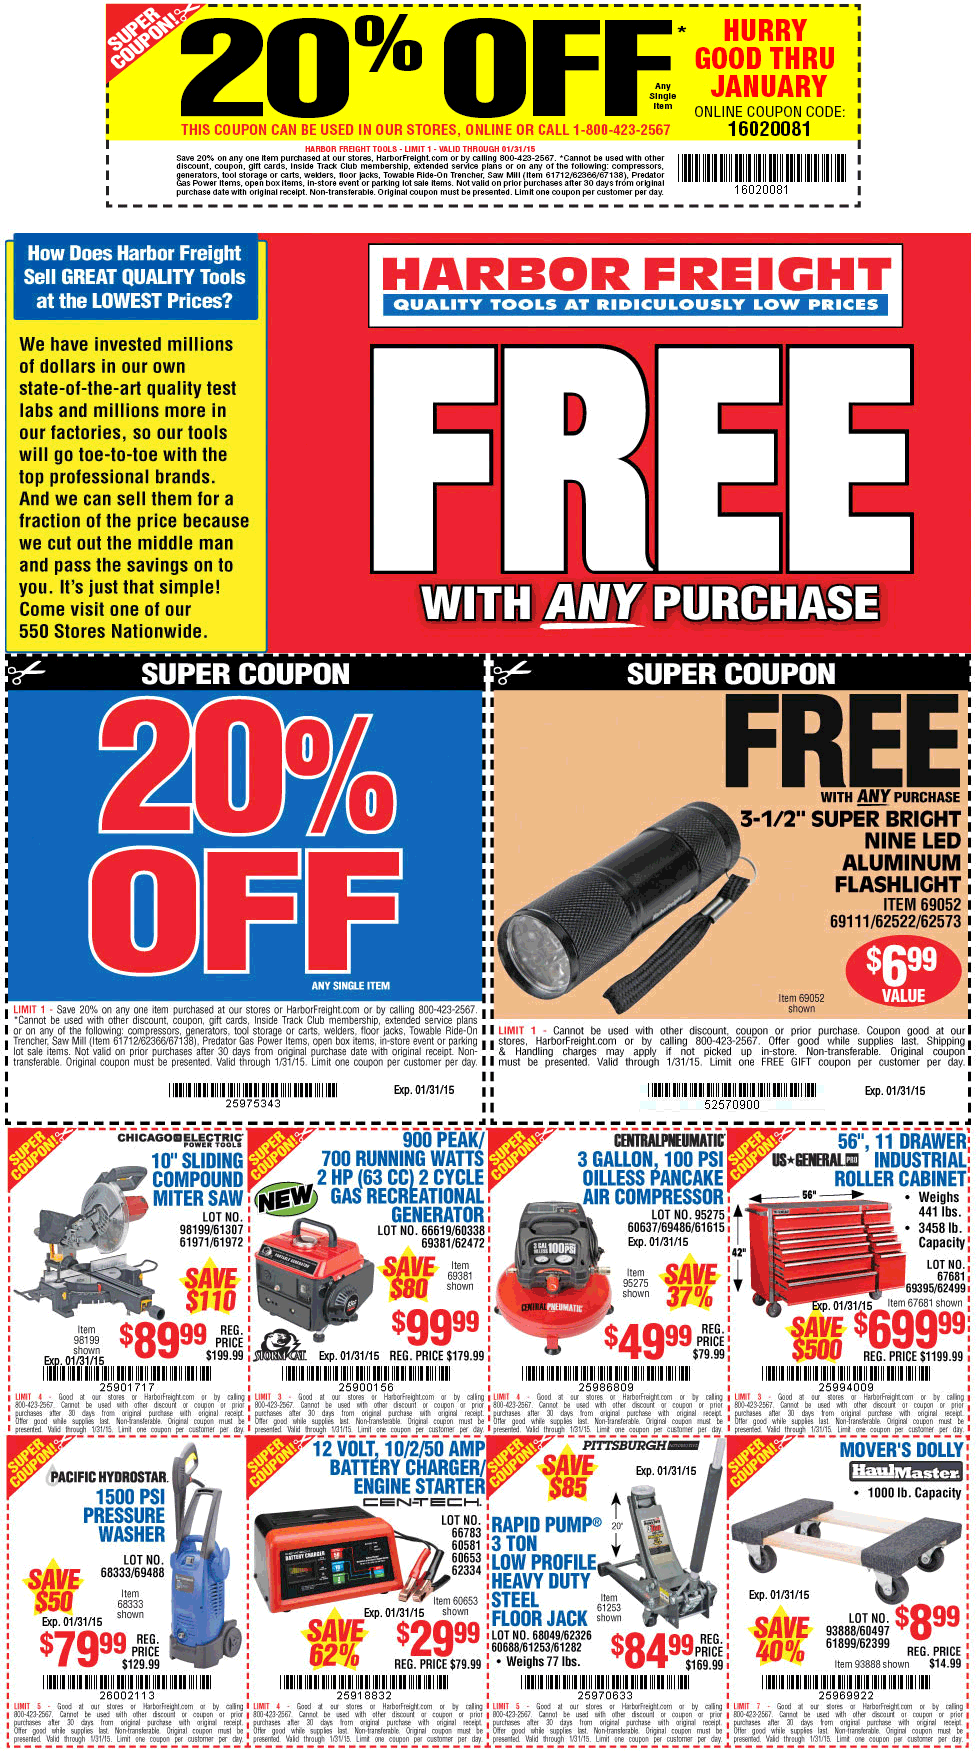 Harbor Freight Coupon June 2018 20% off a single item at Harbor Freight Tools, or online via promo code 16020081